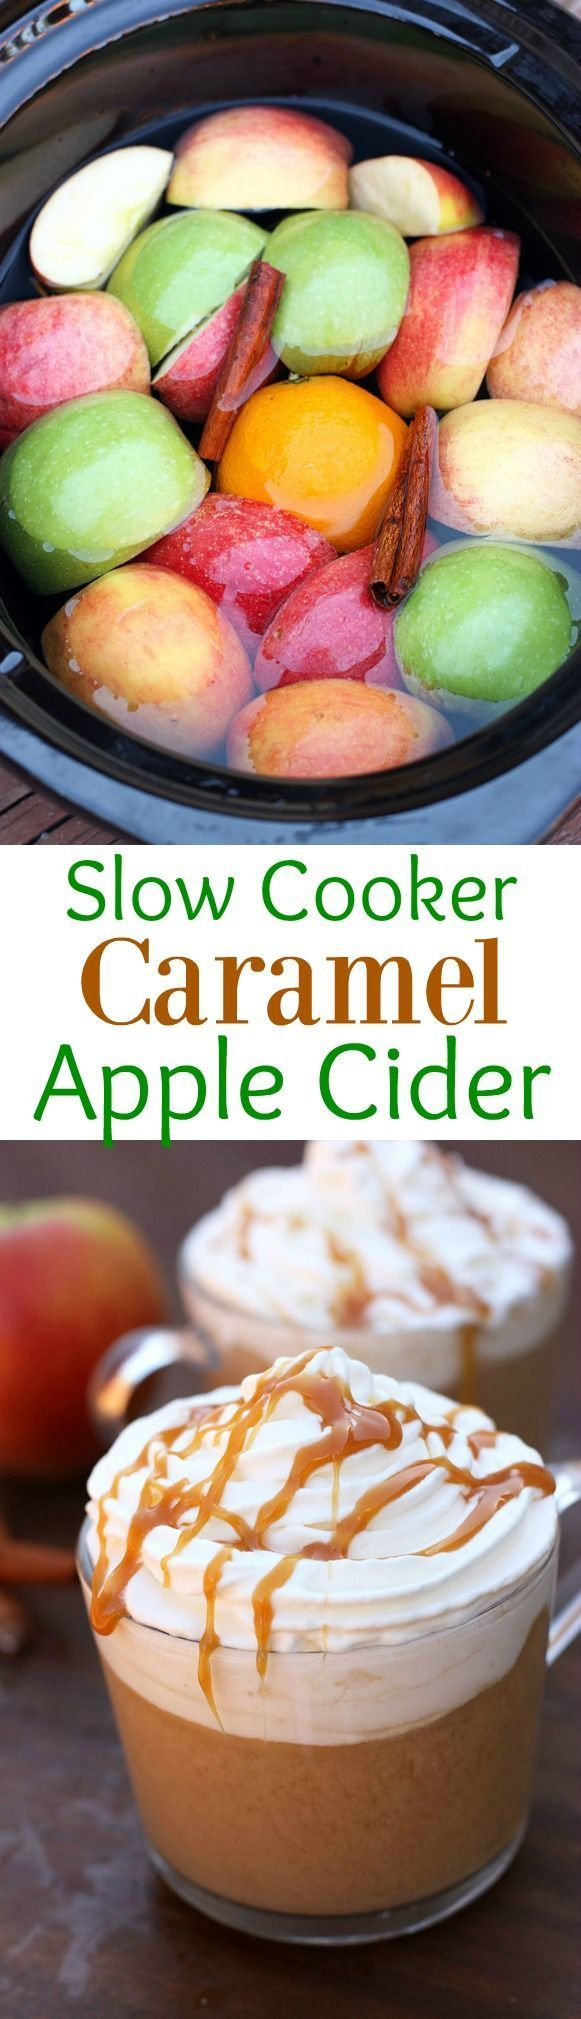 Slow Cooker Caramel Apple Cider is a fun and easy holiday drink the whole…